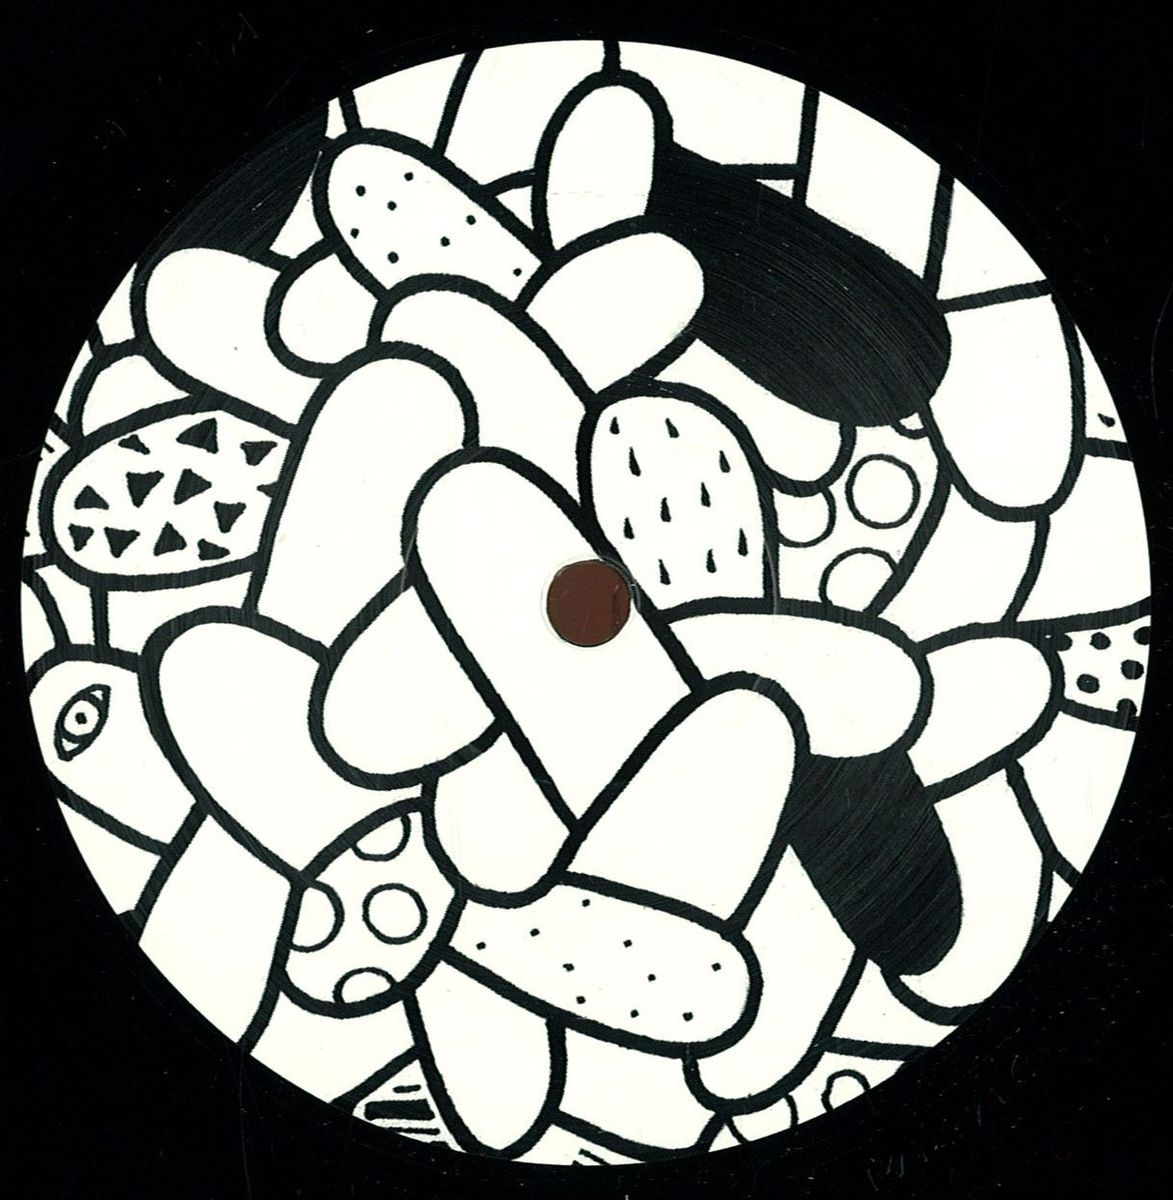 RSH001 - Hector Moralez - Scrambled Rhythms (Inc. DJ Sneak & Tuccillo Remixes)